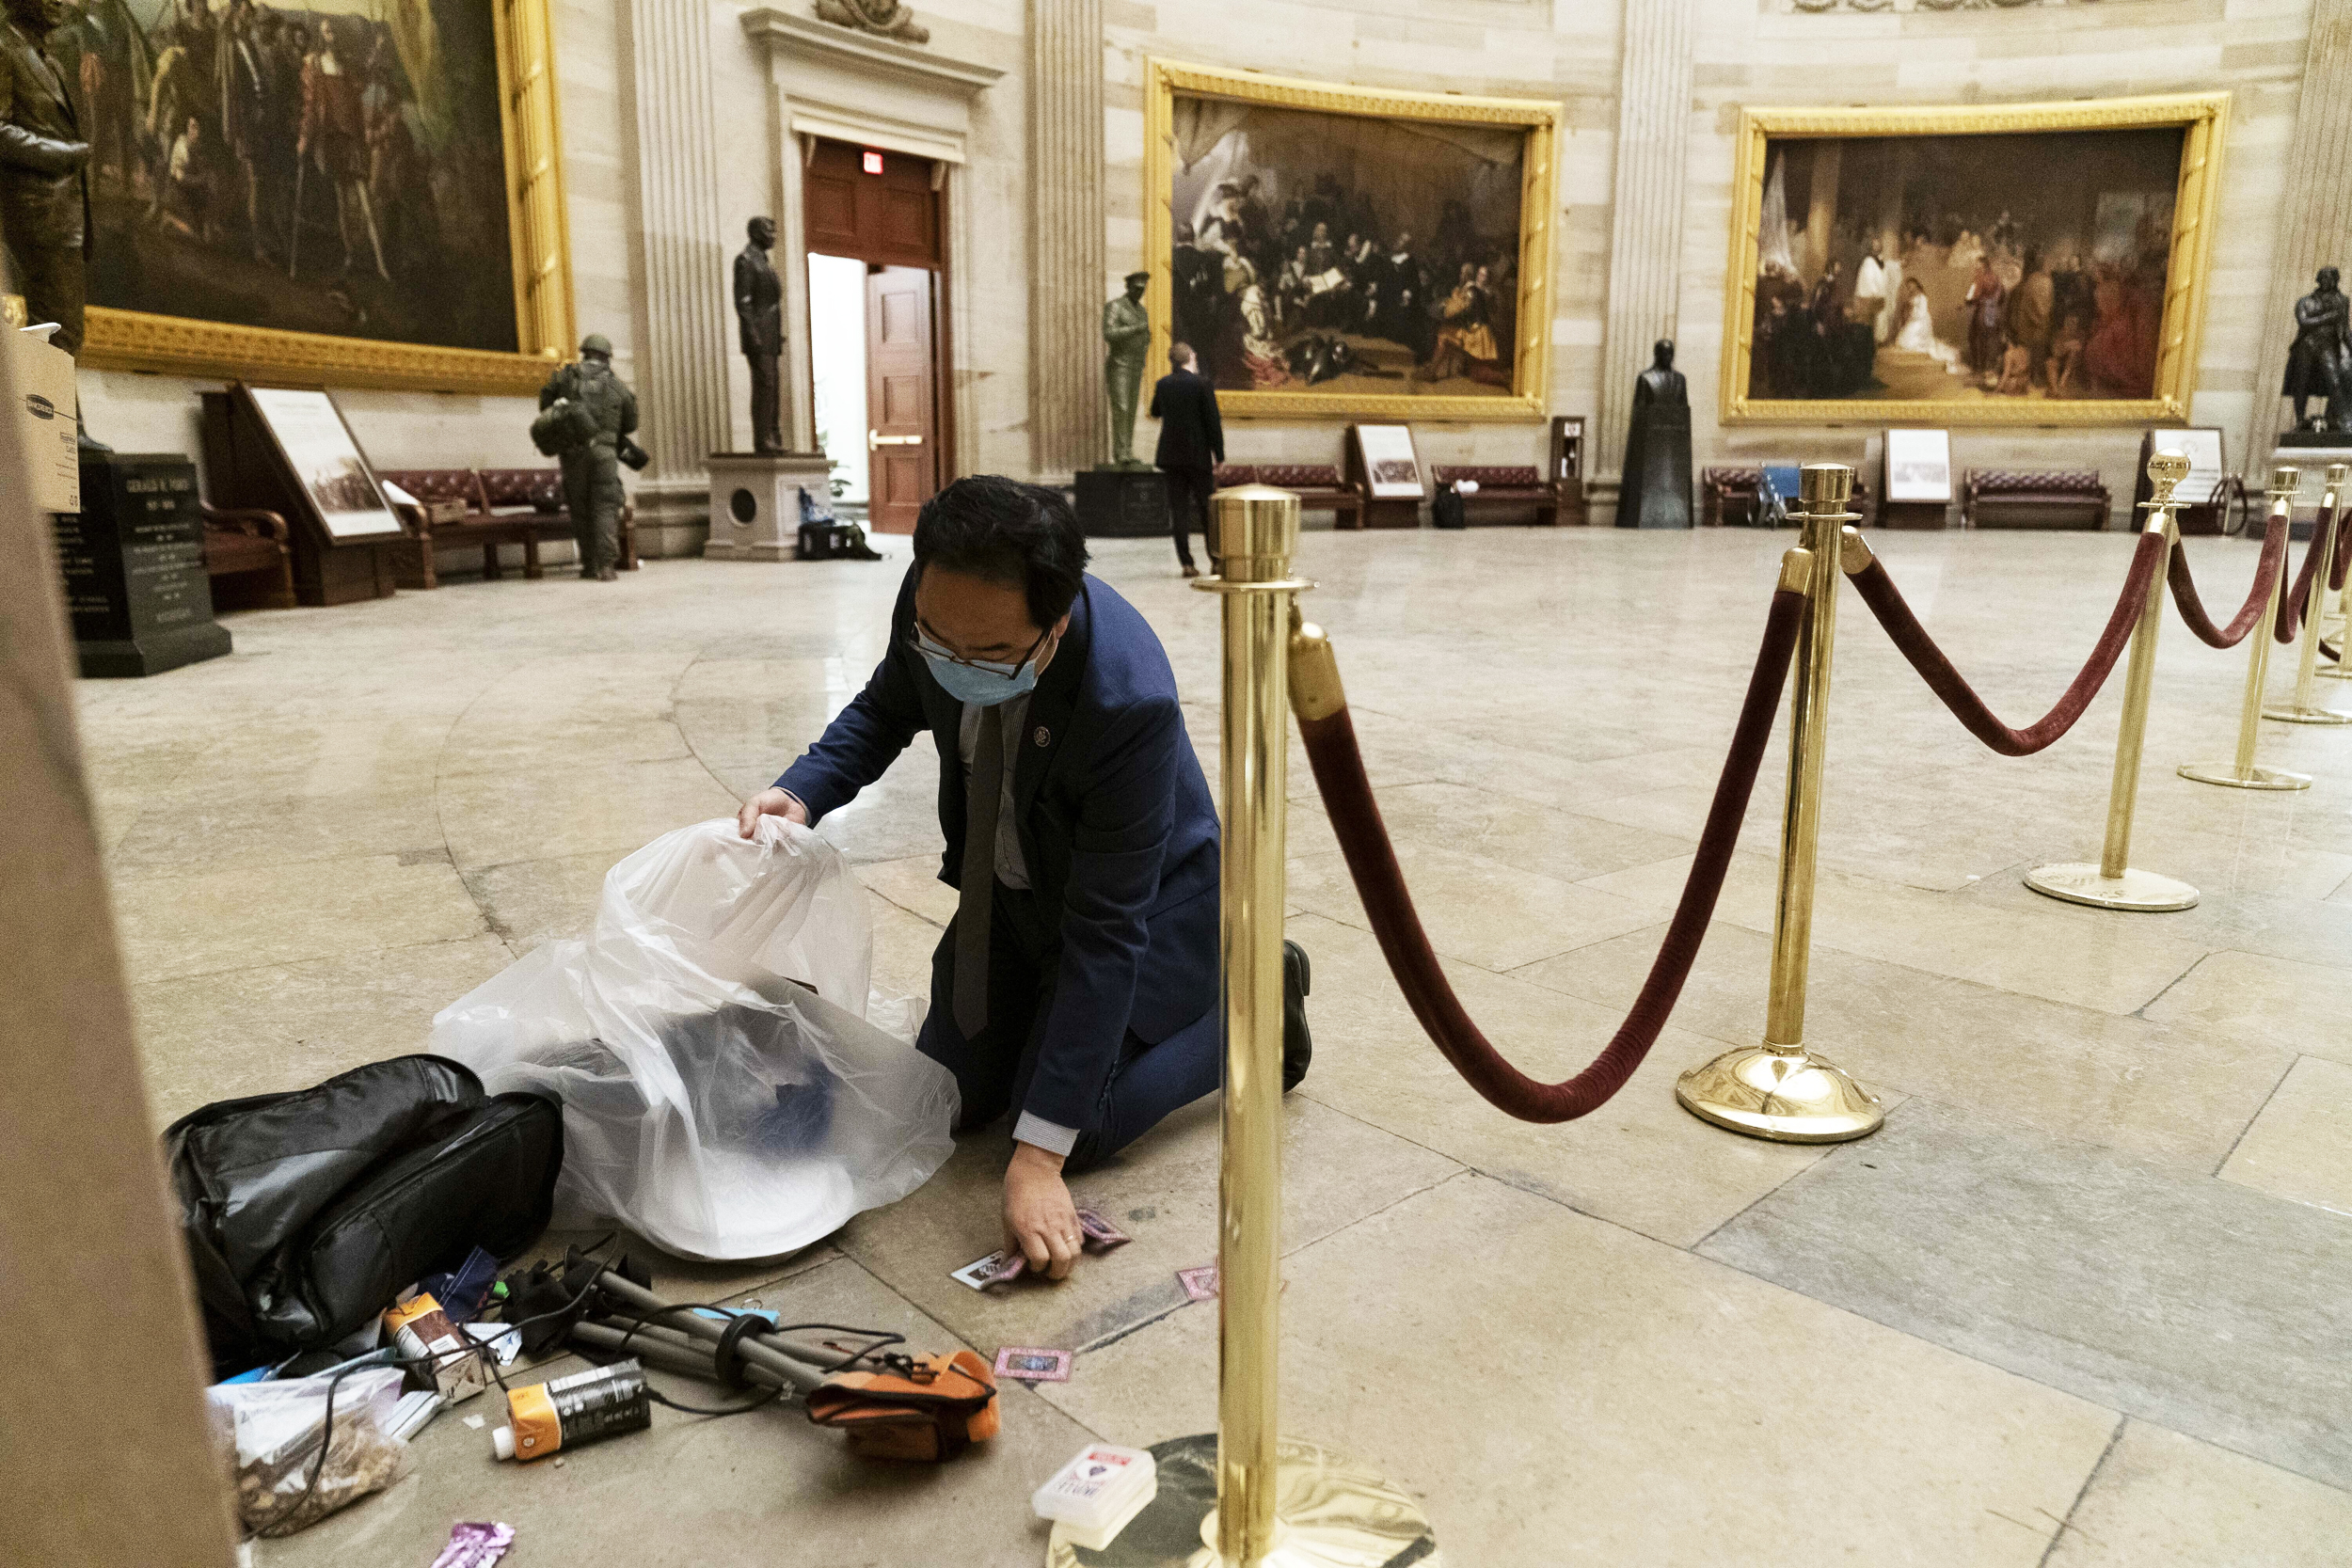 Behind the viral photo of Rep. Andy Kim cleaning up at midnight after riots